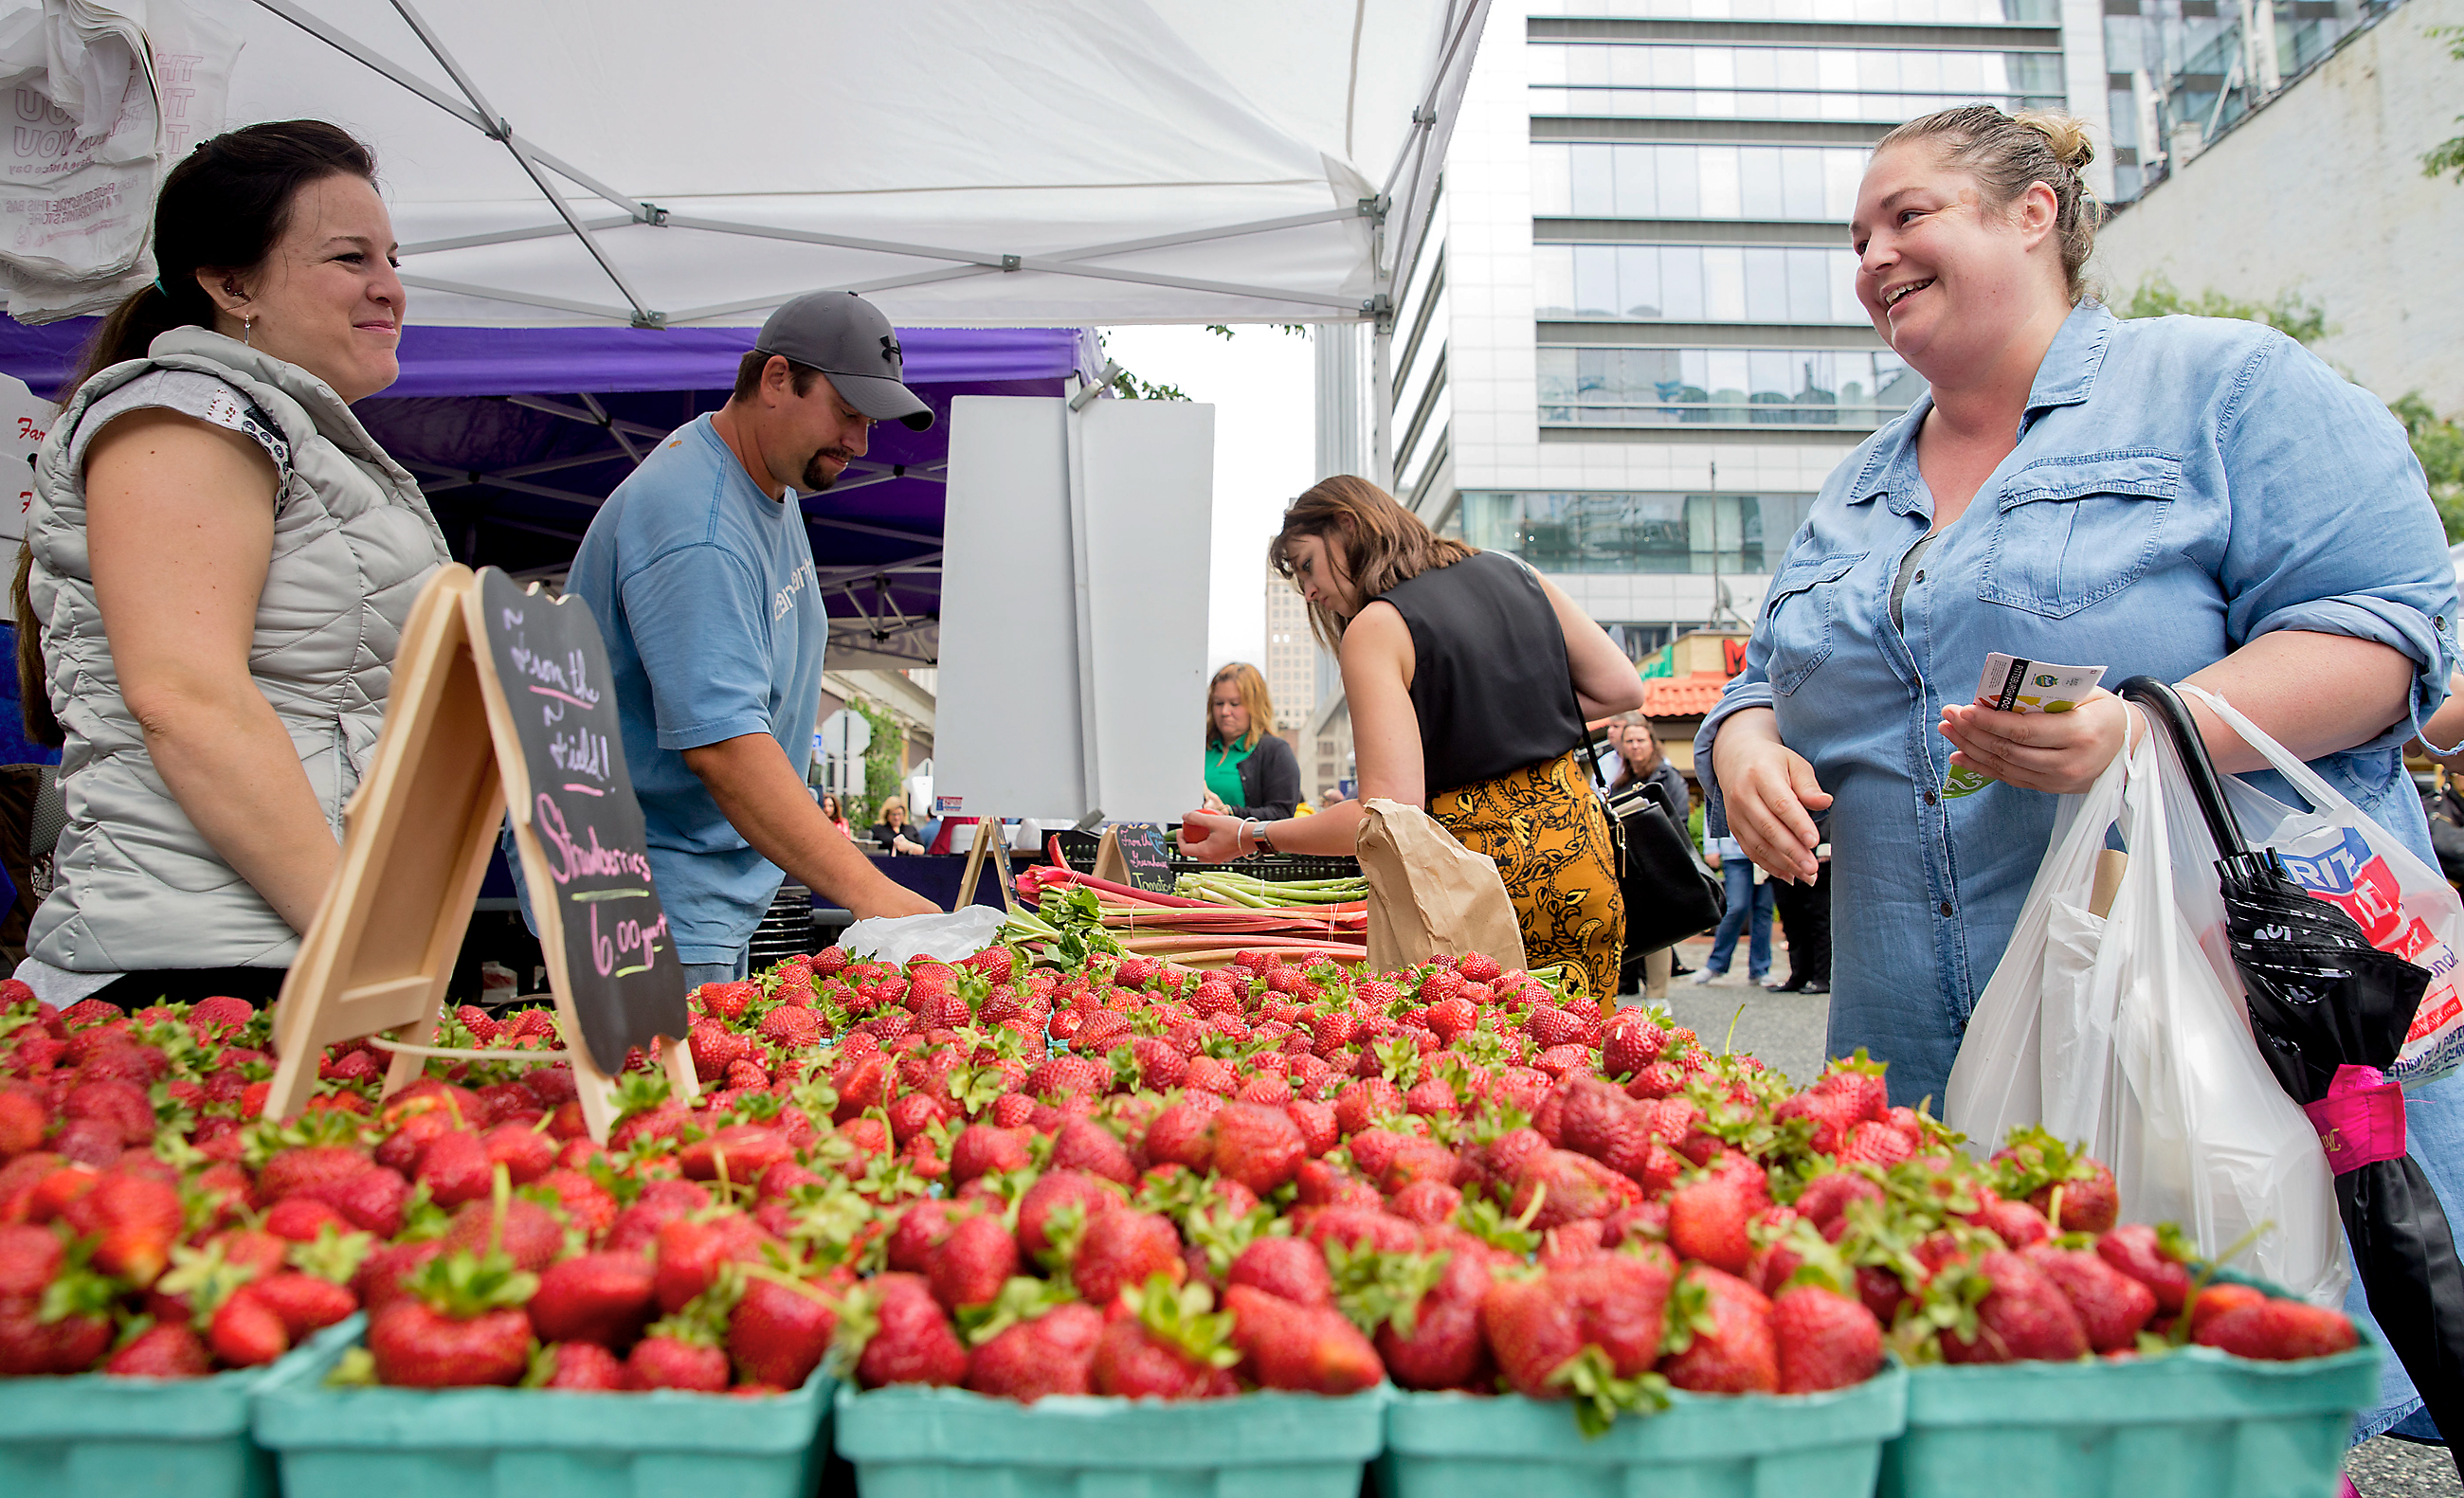 20170525acMarketSquare07-6 Carrie Stewart, left, of Bloomfield, buys two boxes of strawberries from Amy Andrews at the Market Square Farmers Market on Thursday, May 25, 2017. Andrews husband, Chad Andrews, of St. Thomas Township, is the third generation fruit grower of Andrews Farm Market.